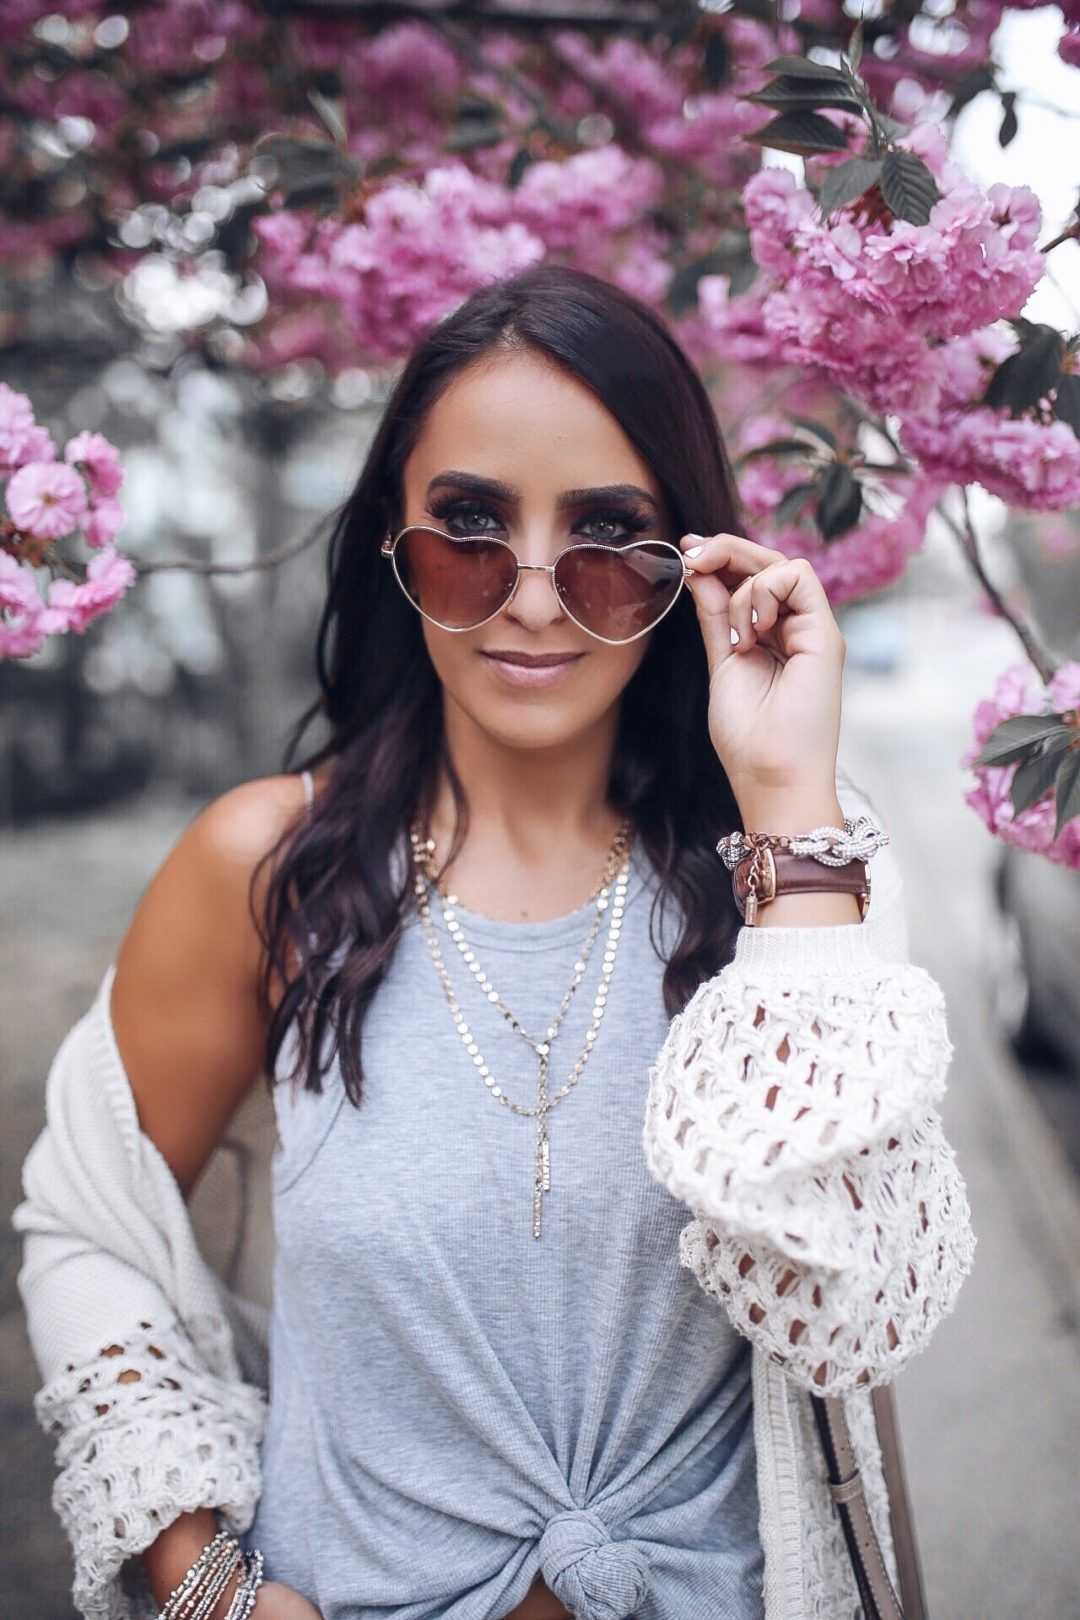 e5b9f51fb23b Blogger Sarah Lindner of The House of Sequins wearing Free people gray tank  top. Marc Fisher wedges. Baublebar layered necklace. Heart sunglasses.